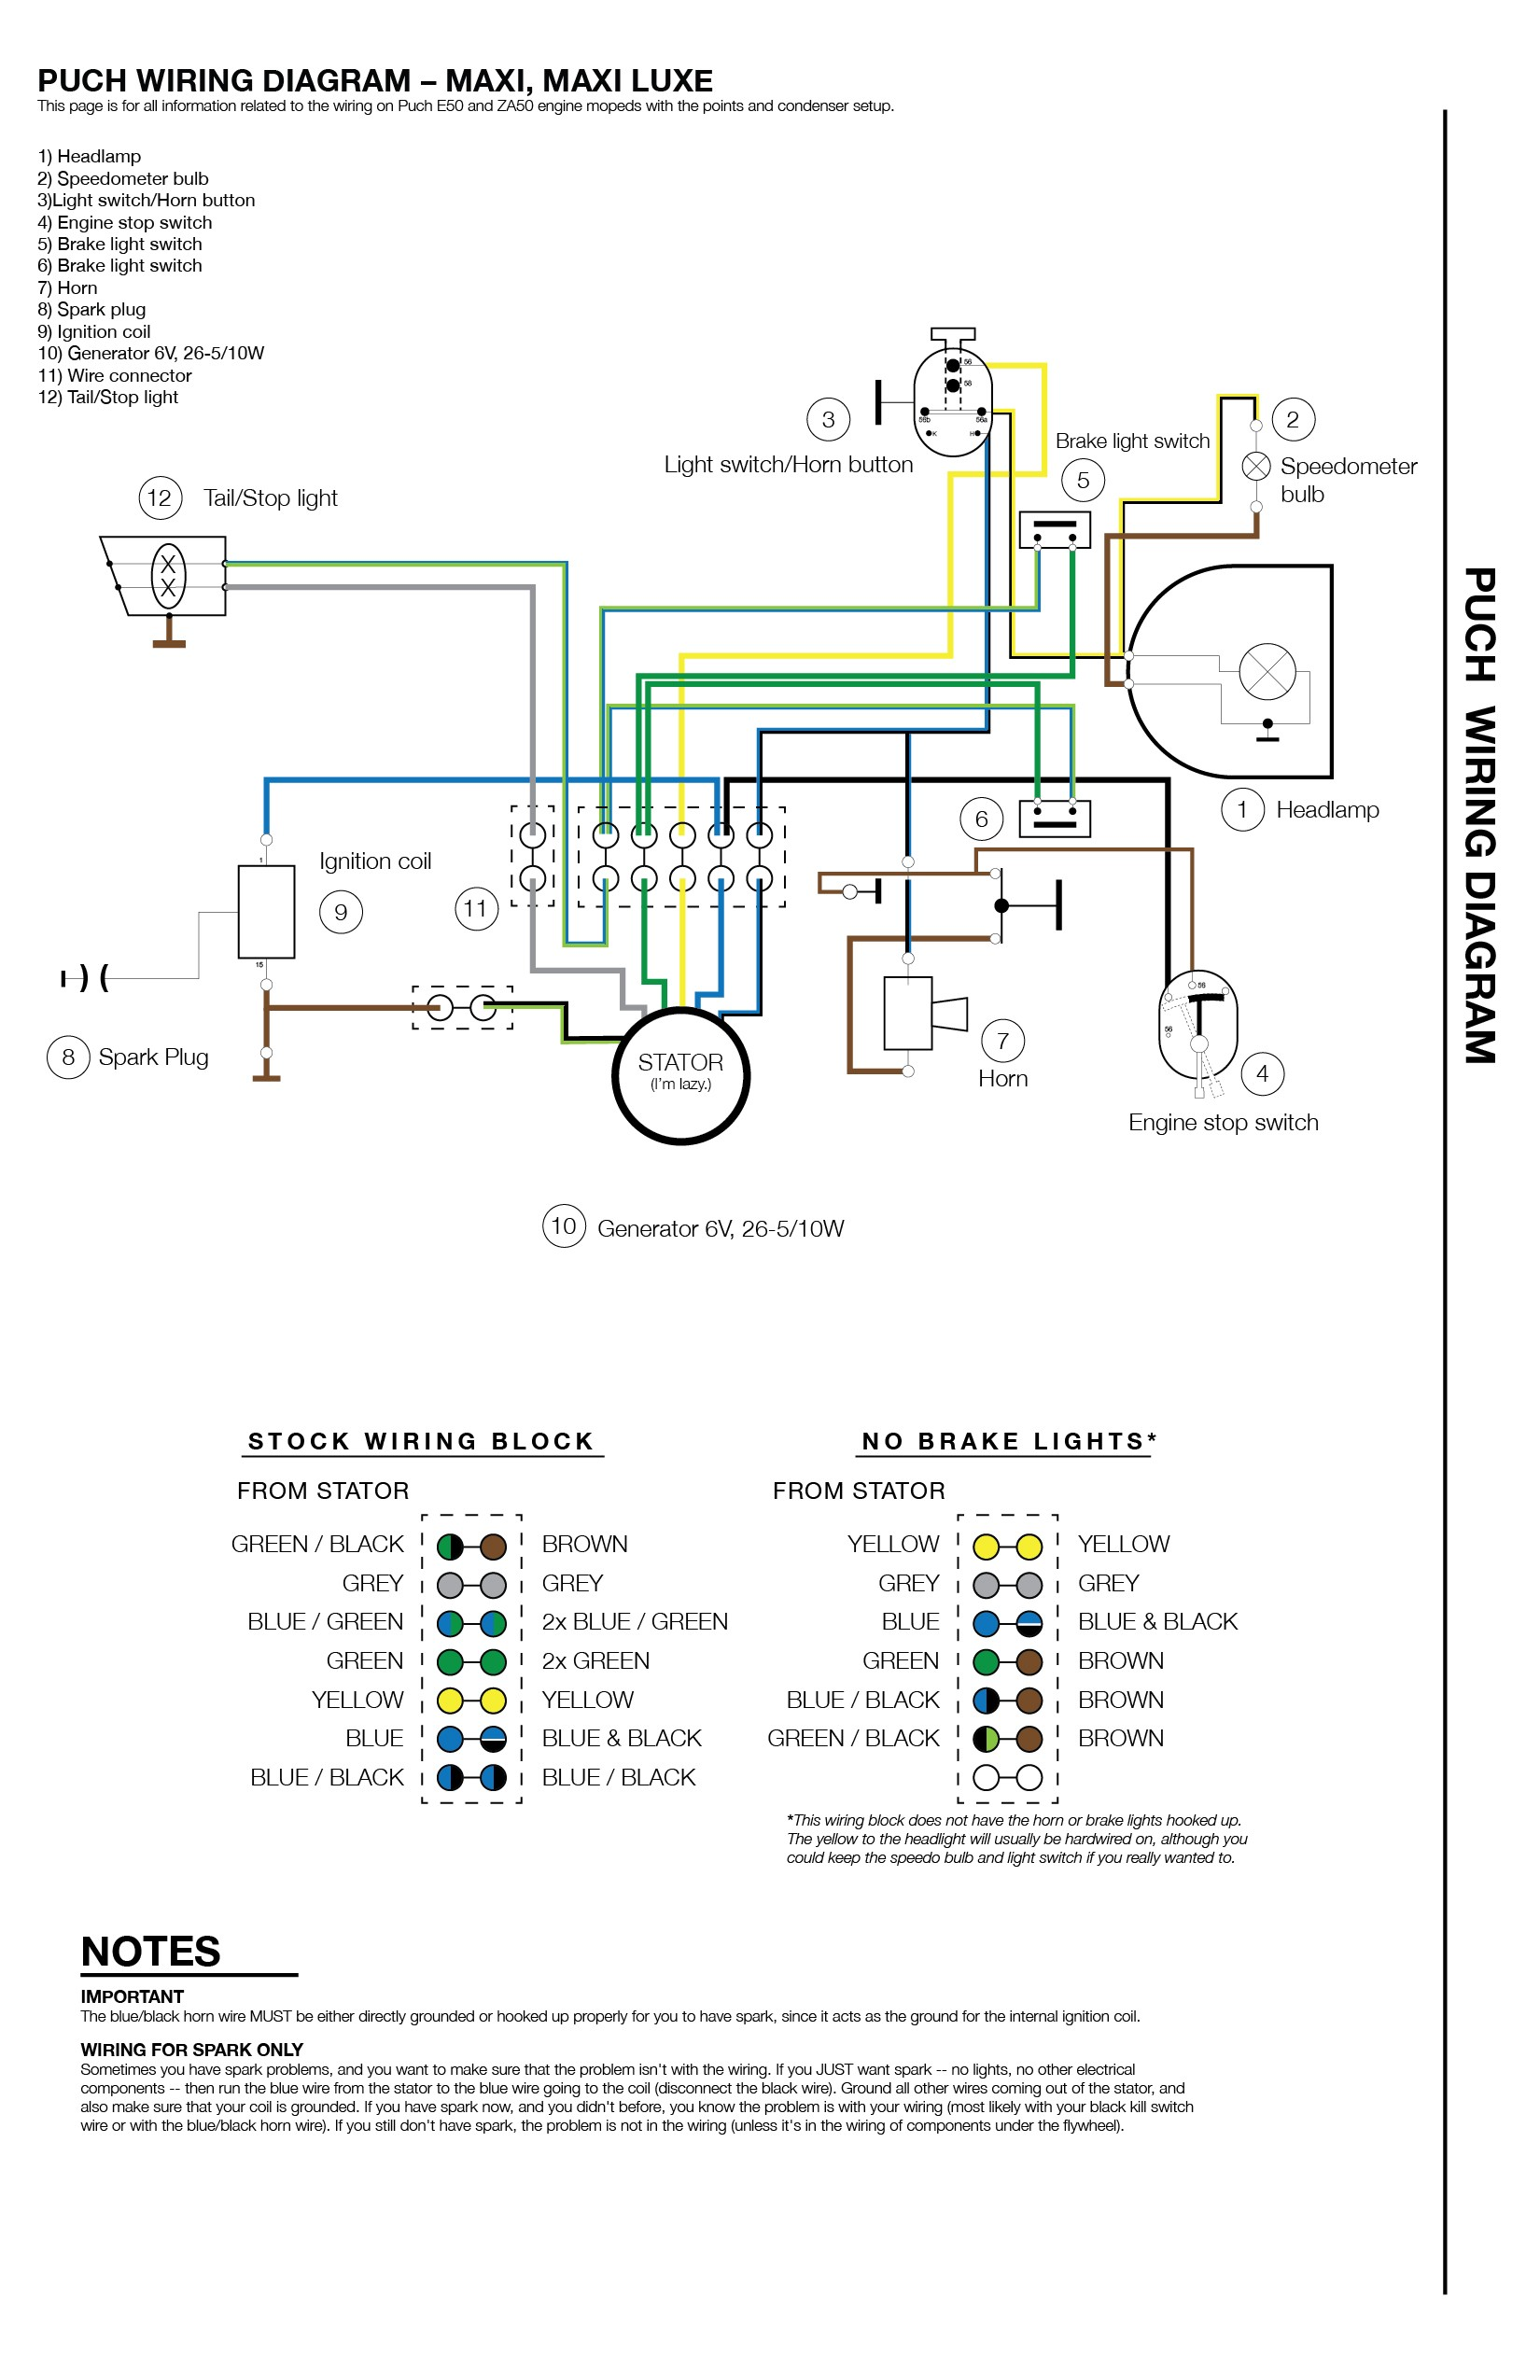 3 Wire Circuit Diagram Wire Trailer Wiring Diagram Moreover Ducati Supersport Wiring Of 3 Wire Circuit Diagram